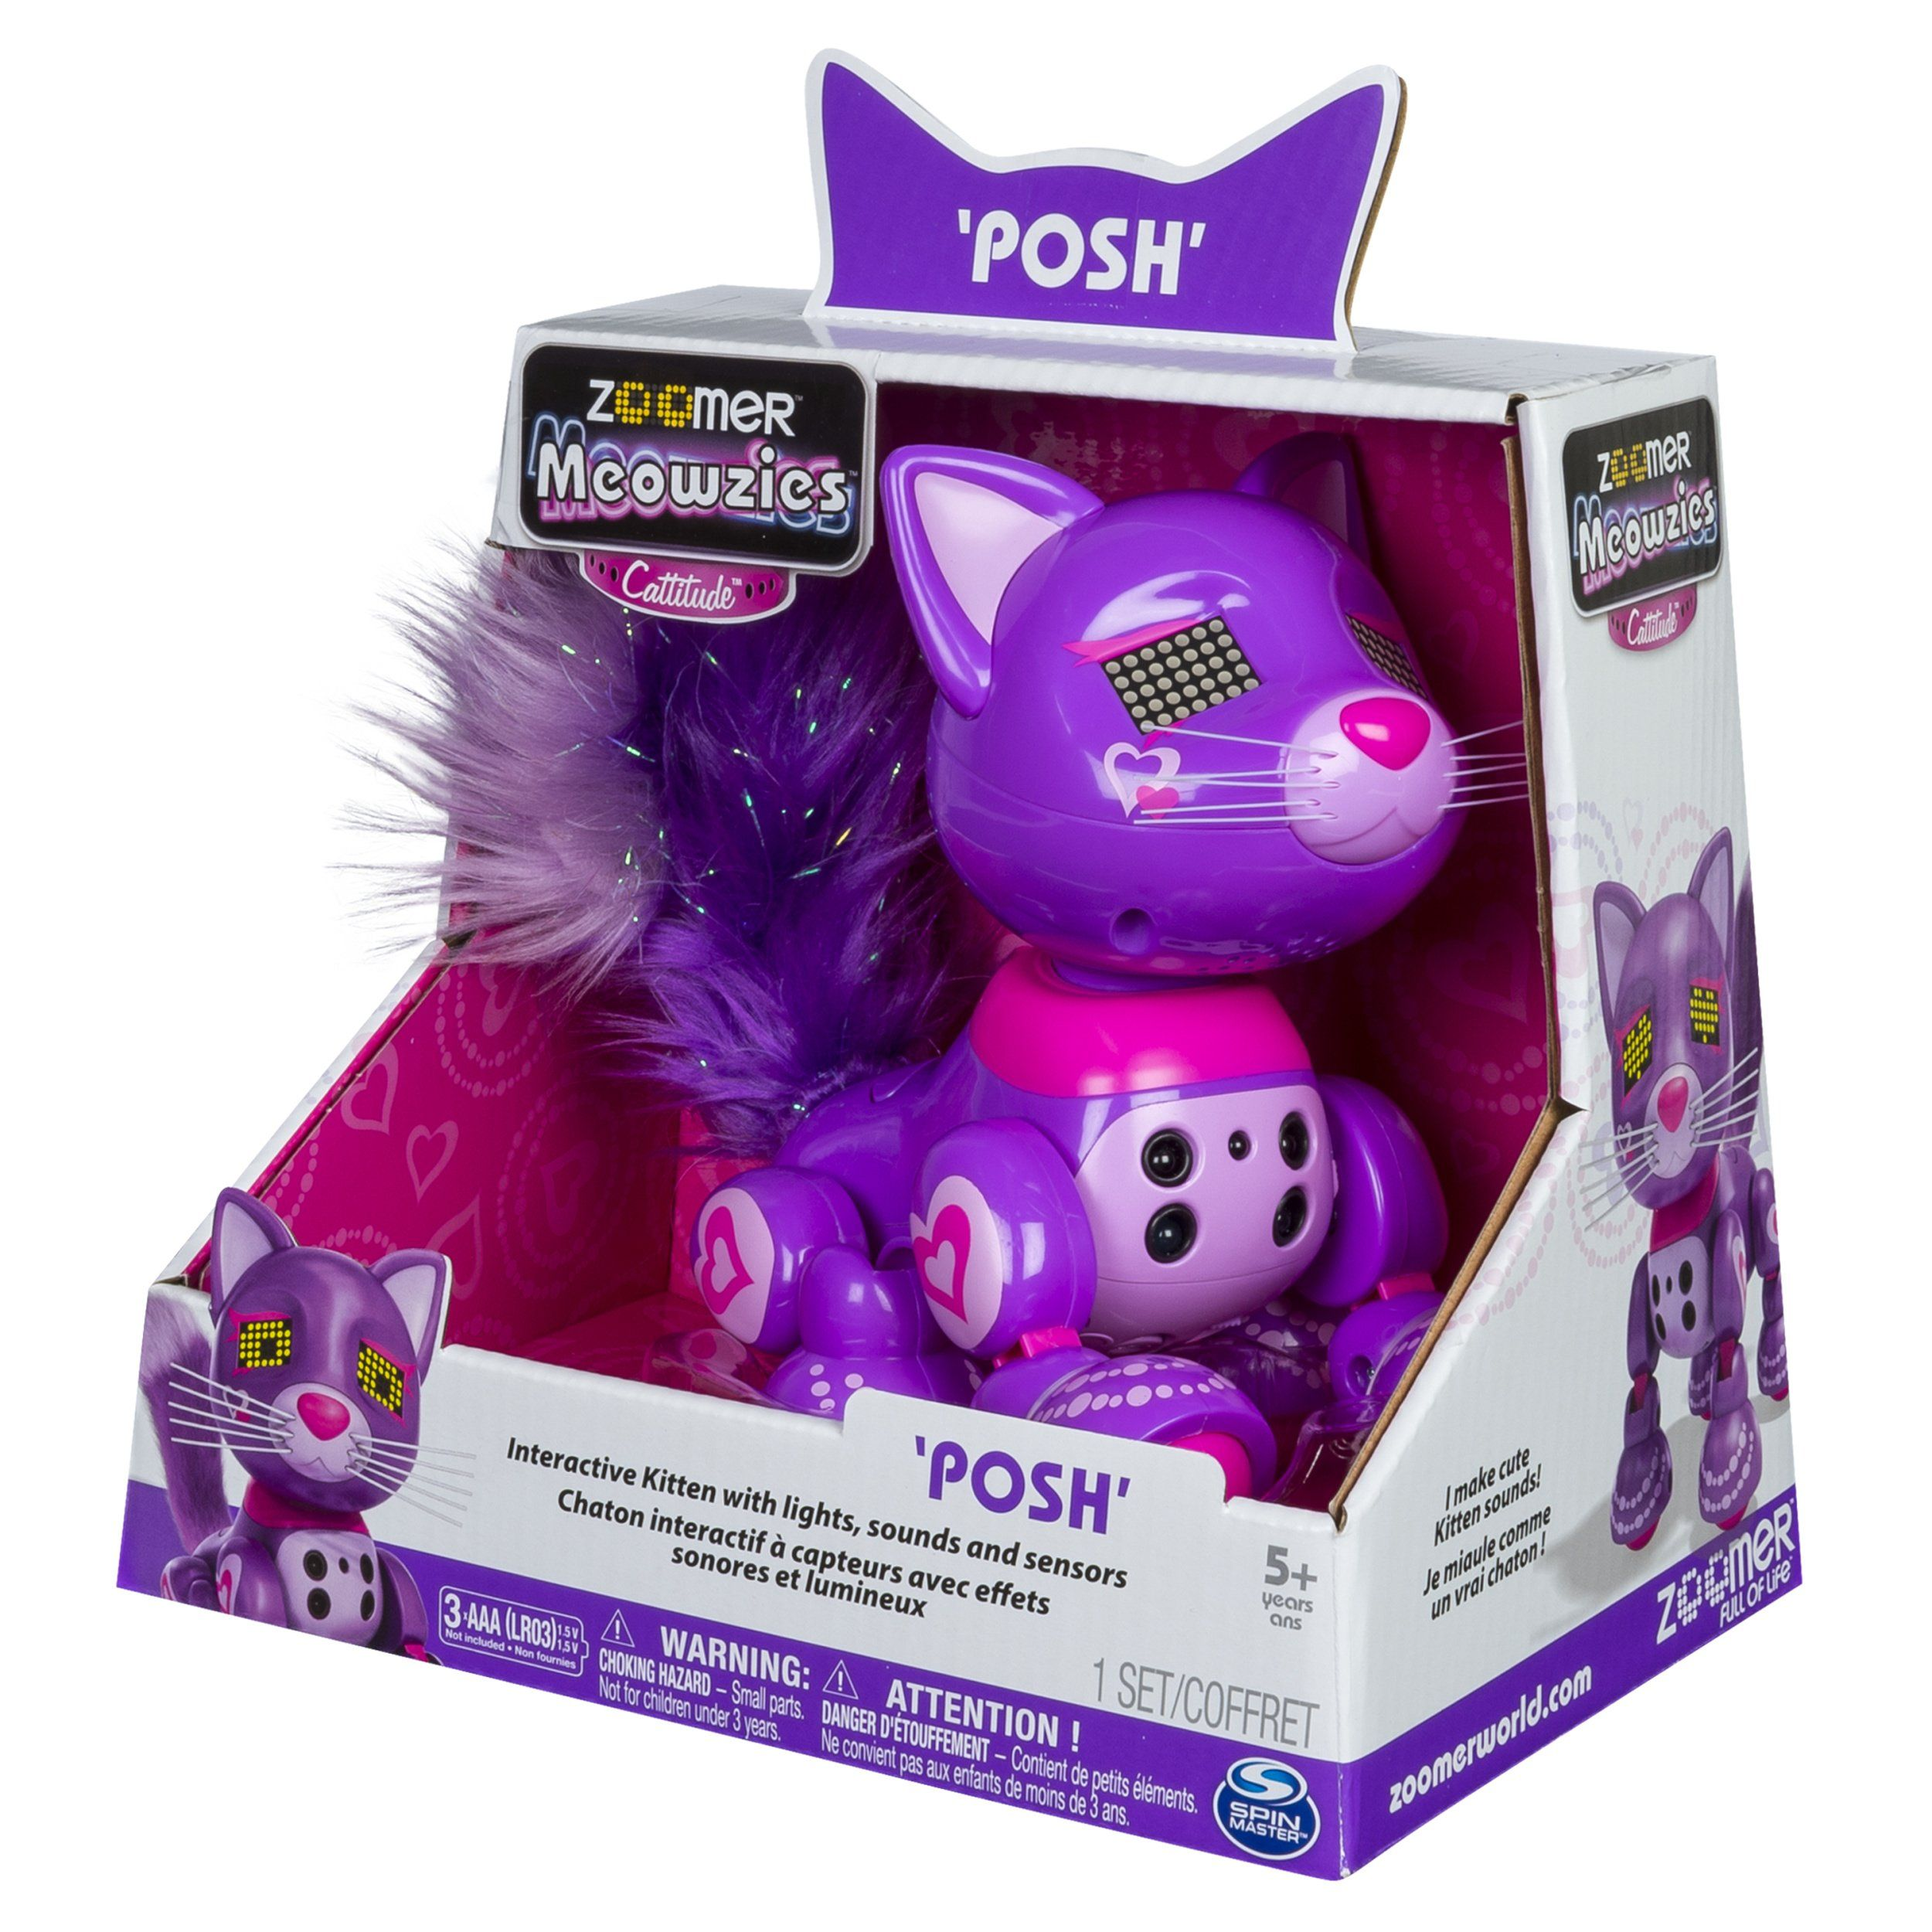 Zoomer Meowzies Posh Interactive Kitten With Lights Sounds And Sensors You Can Get Additional Details At The Image Link This Is A Interactive Sensor Lights